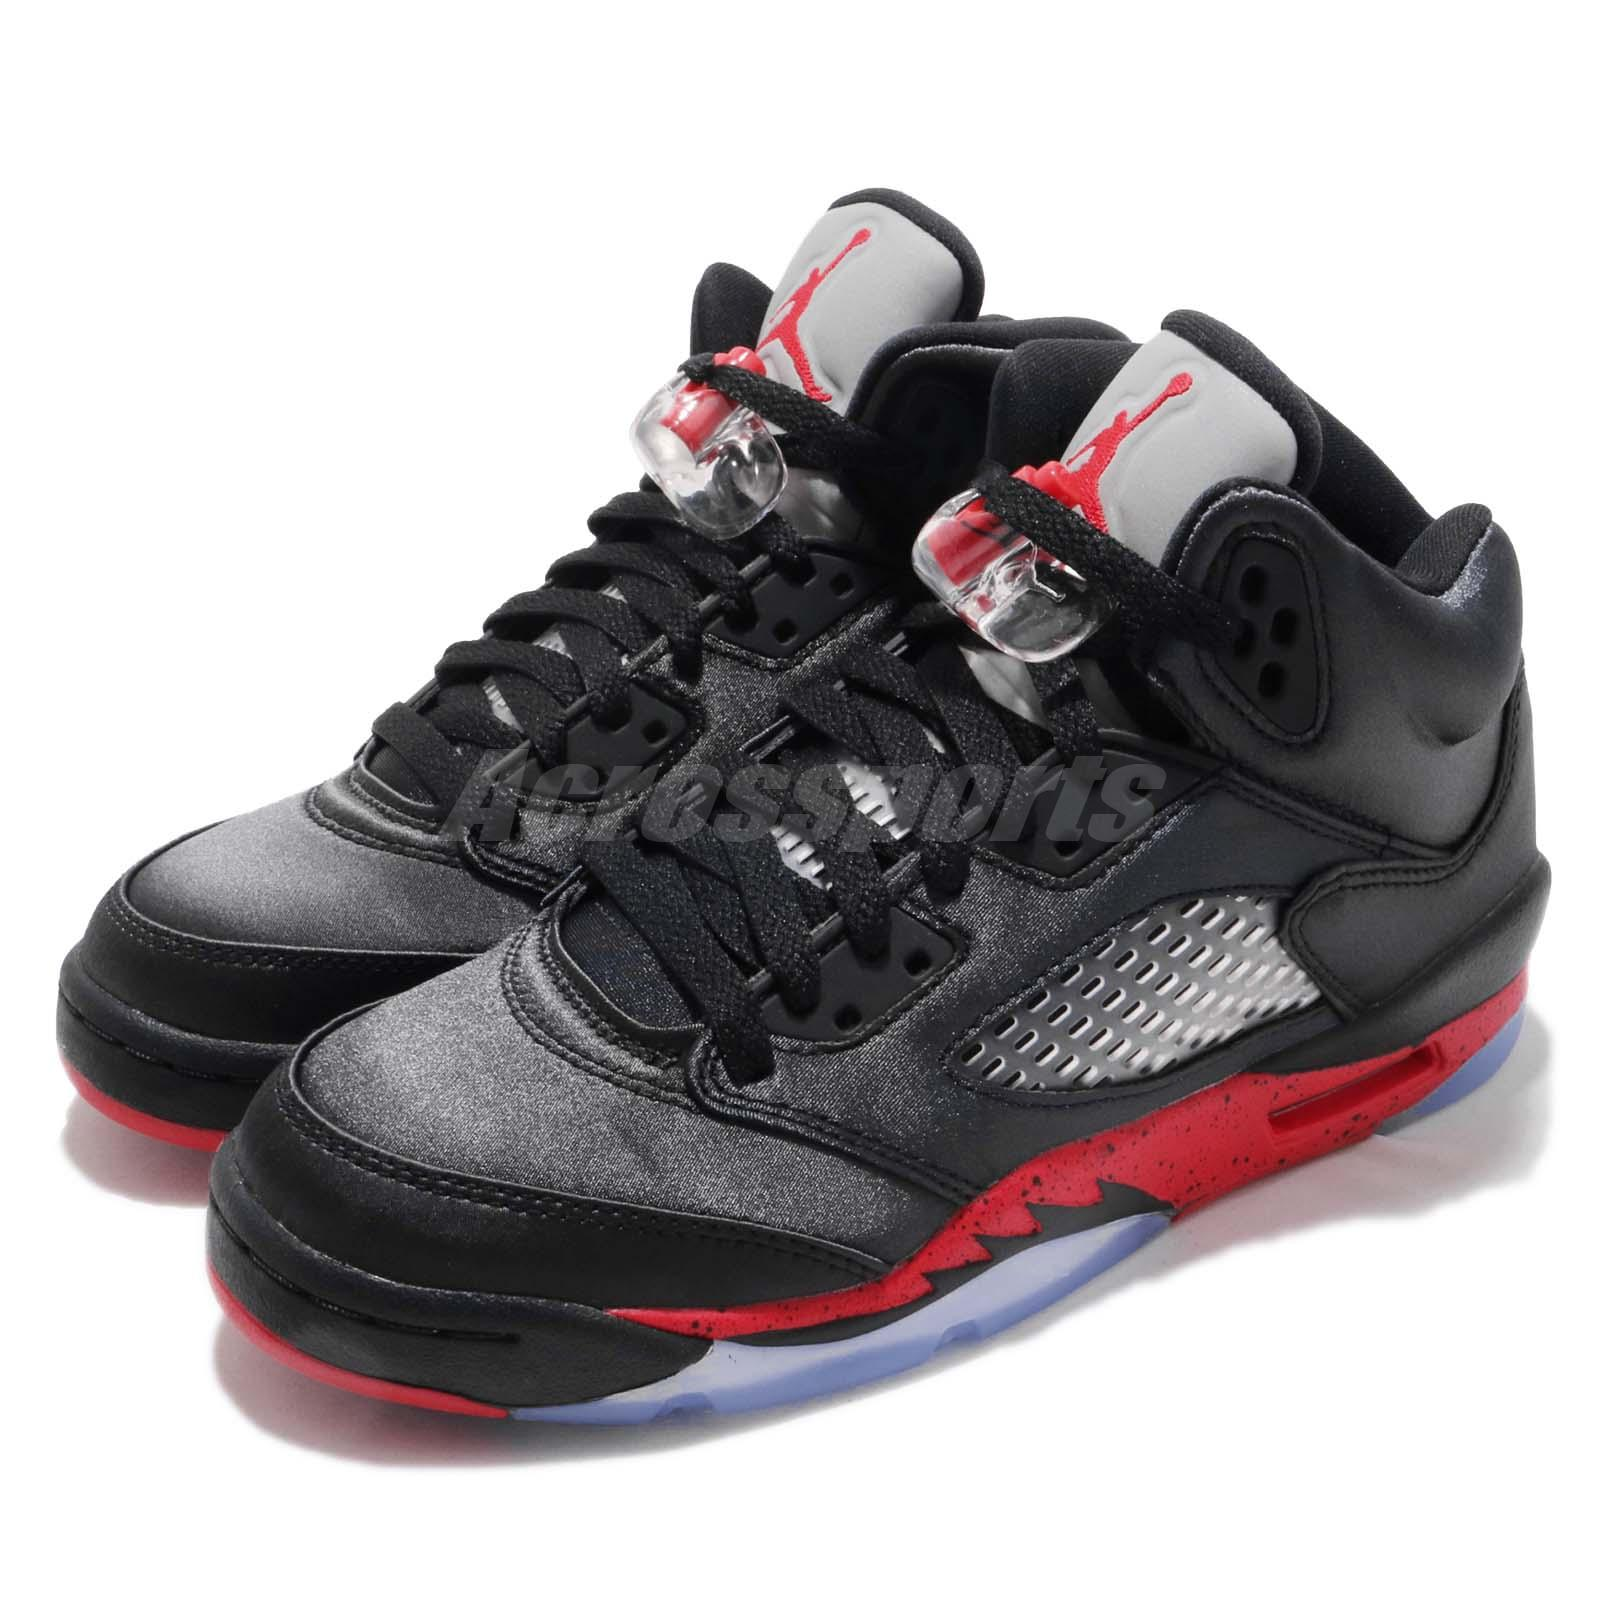 2ea3fc30ba51 Details about Nike Air Jordan 5 Retro BG GS Satin Black Red Bred V AJ5  Youth Kids 440888-006